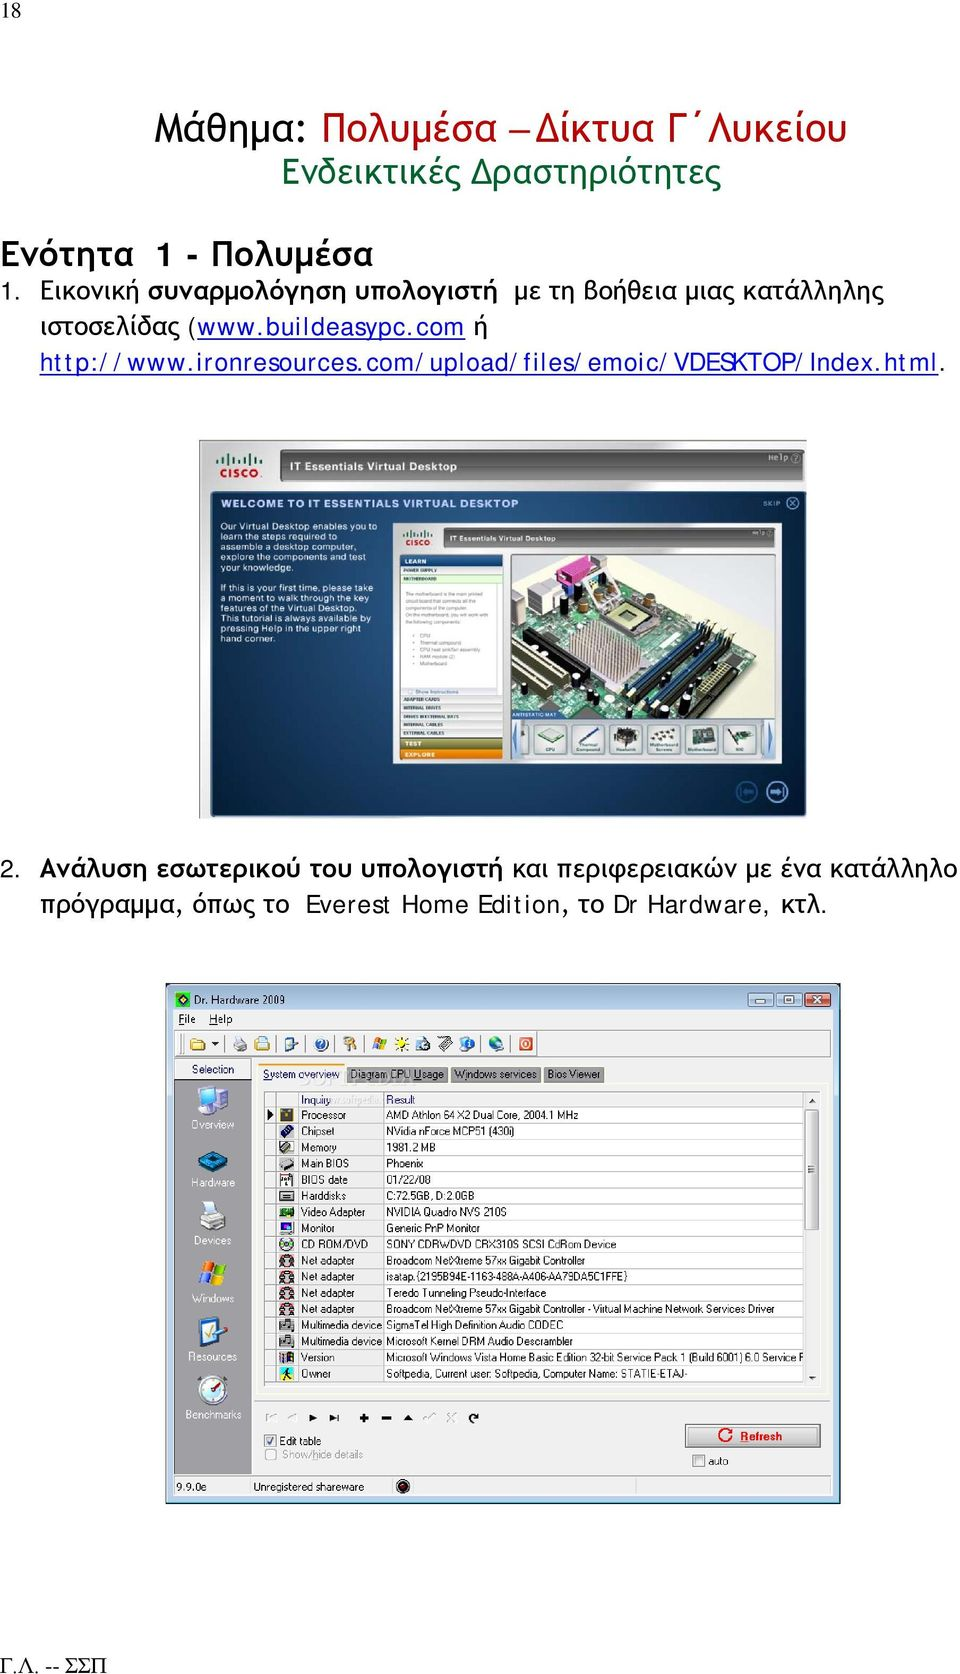 com ή http://www.ironresources.com/upload/files/emoic/vdesktop/index.html. 2.